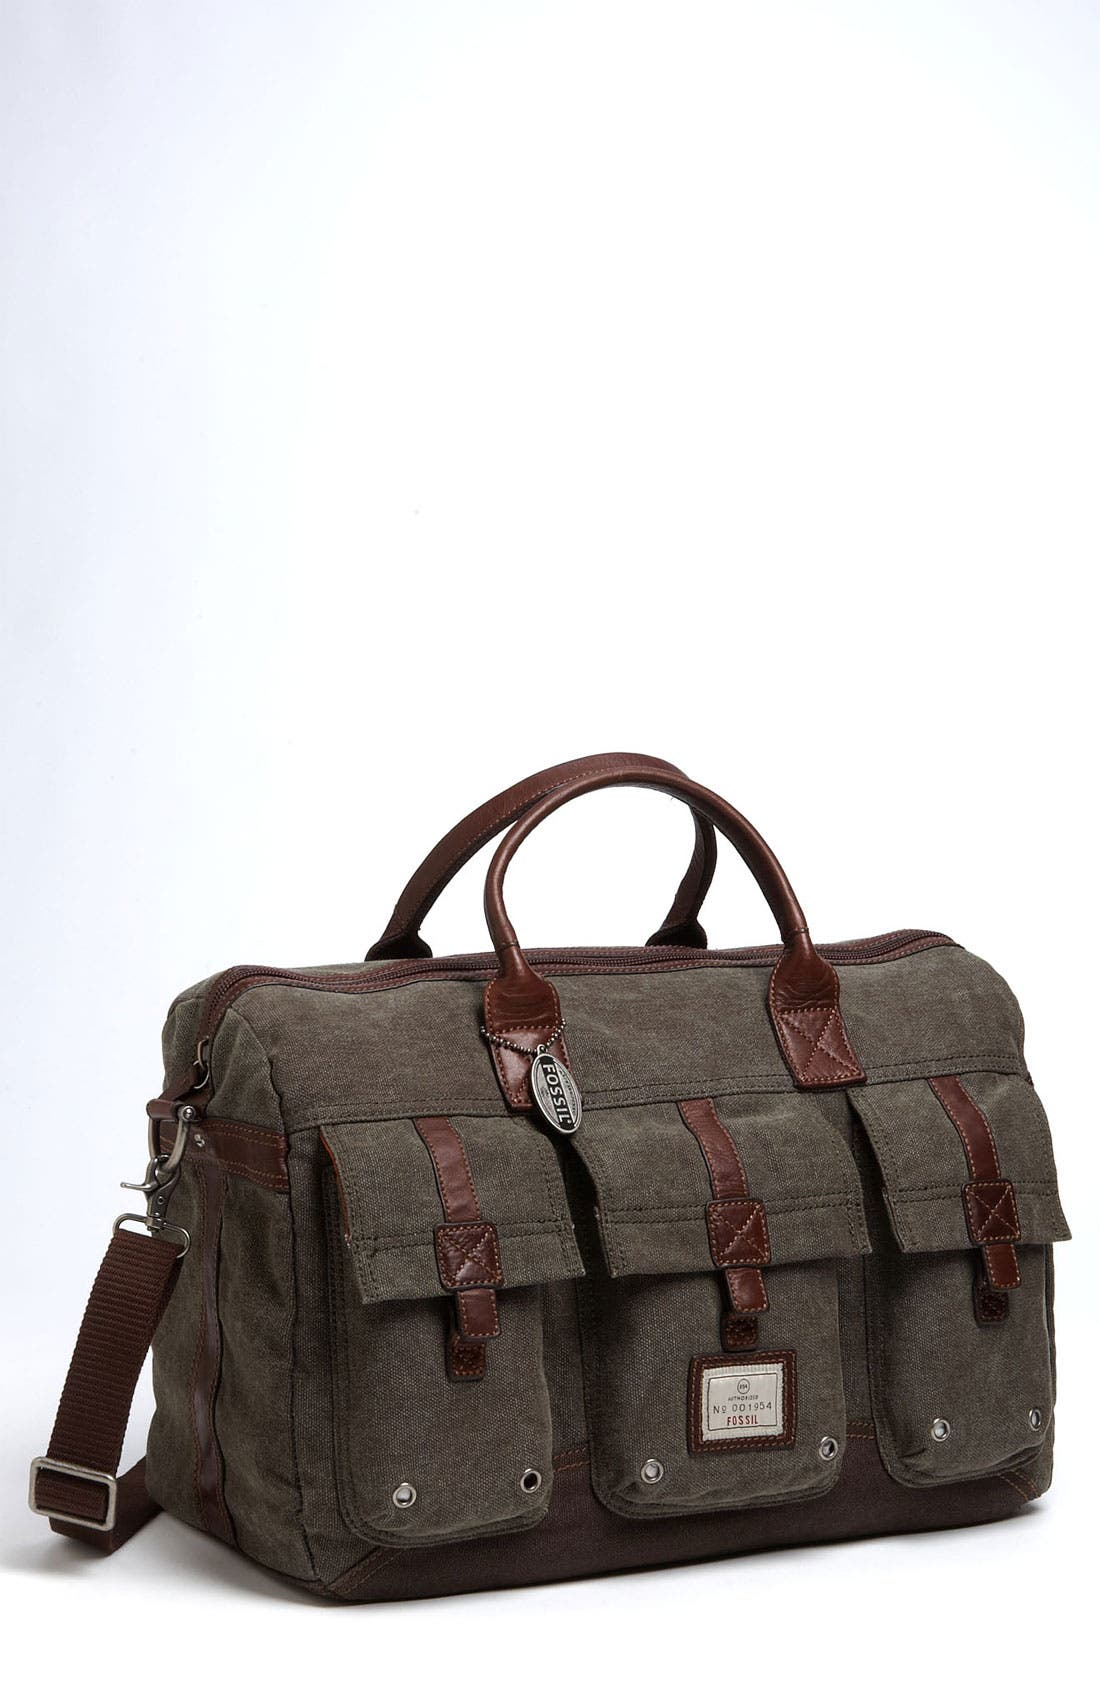 Main Image - Fossil 'Trail' Duffel Bag